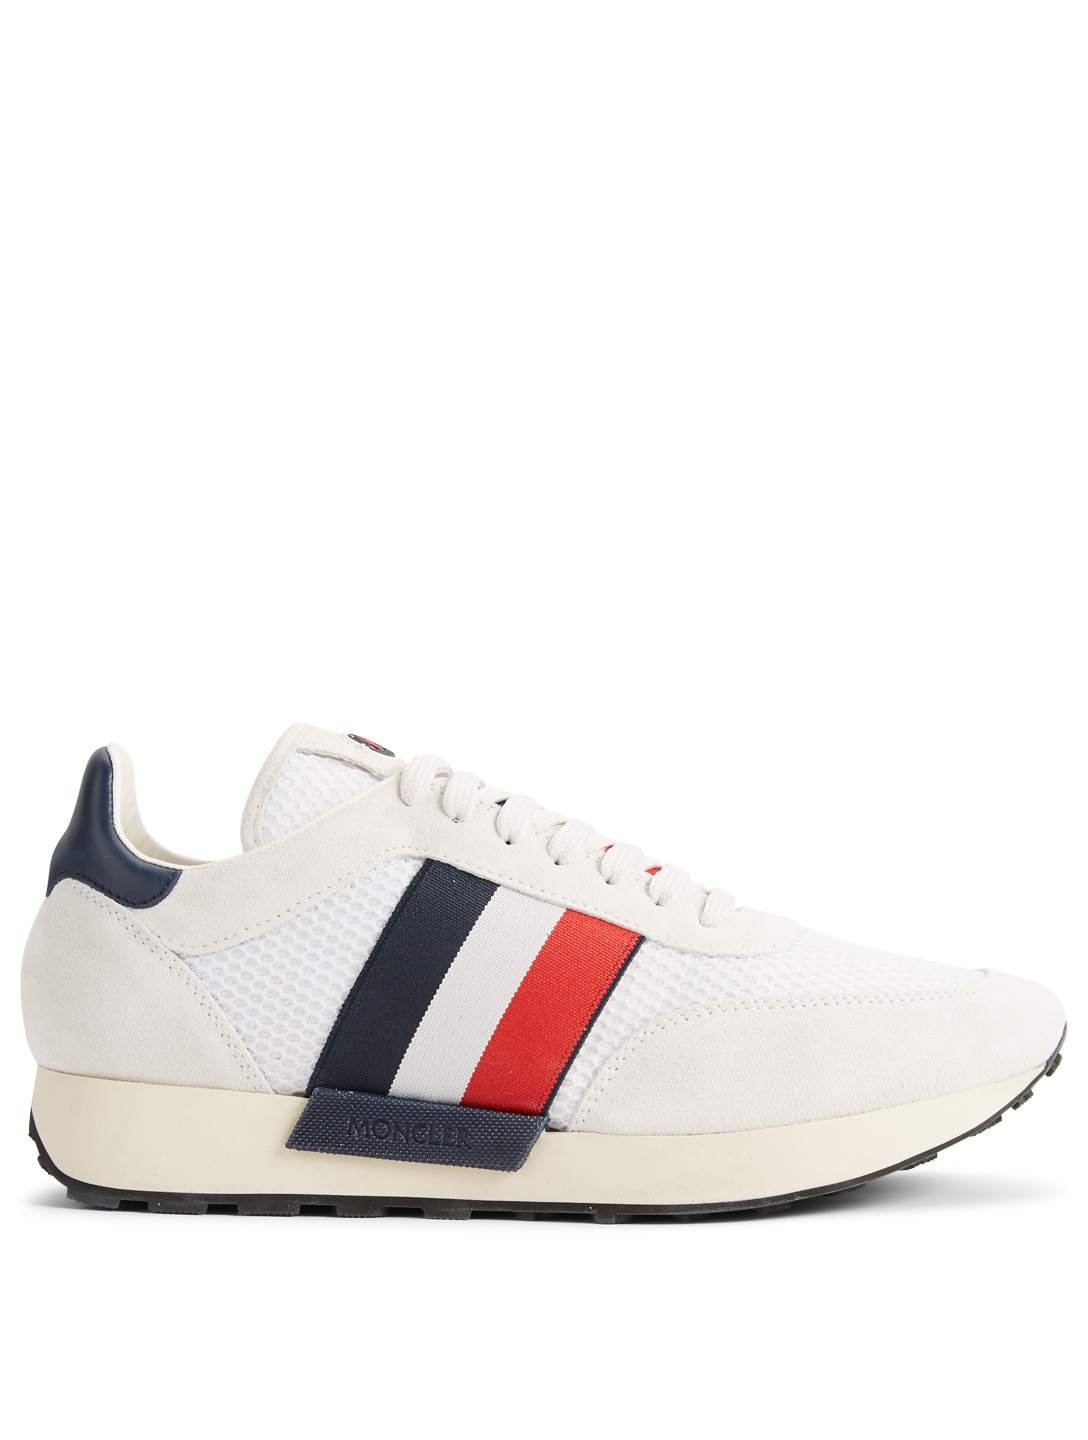 MONCLER Horace Suede and Mesh Sneakers Men's White